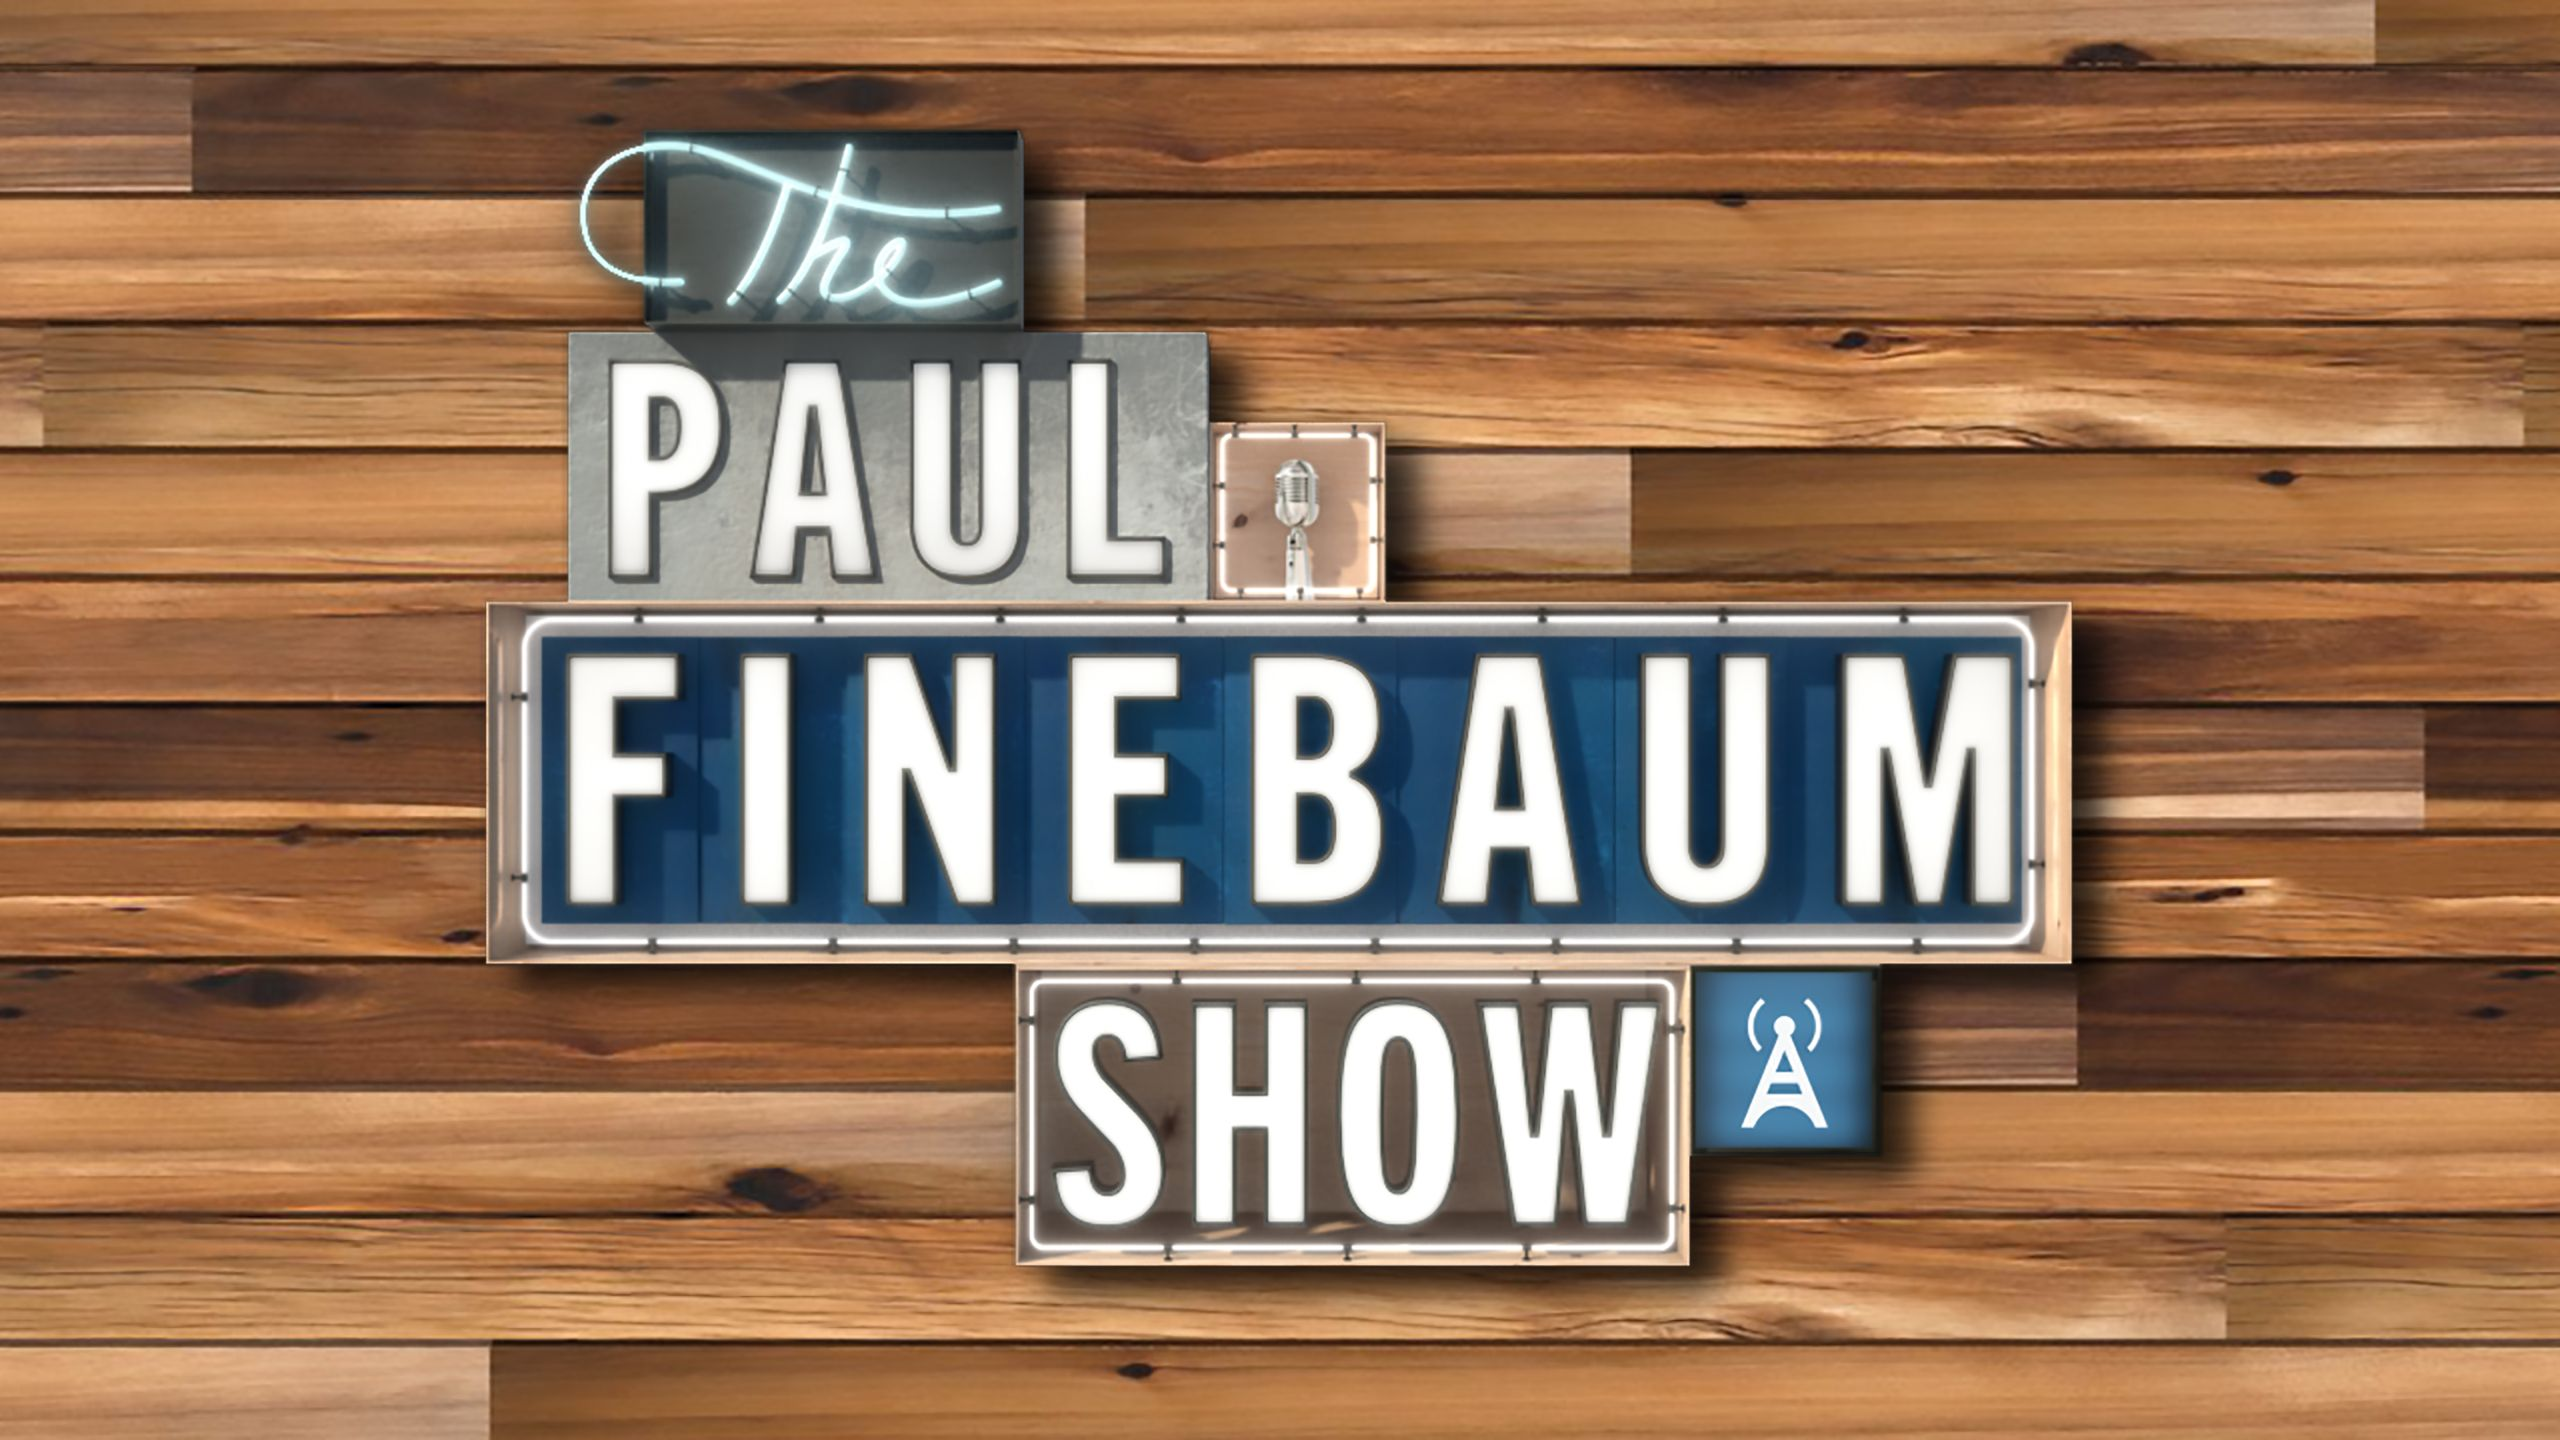 Mon, 3/19 - The Paul Finebaum Show